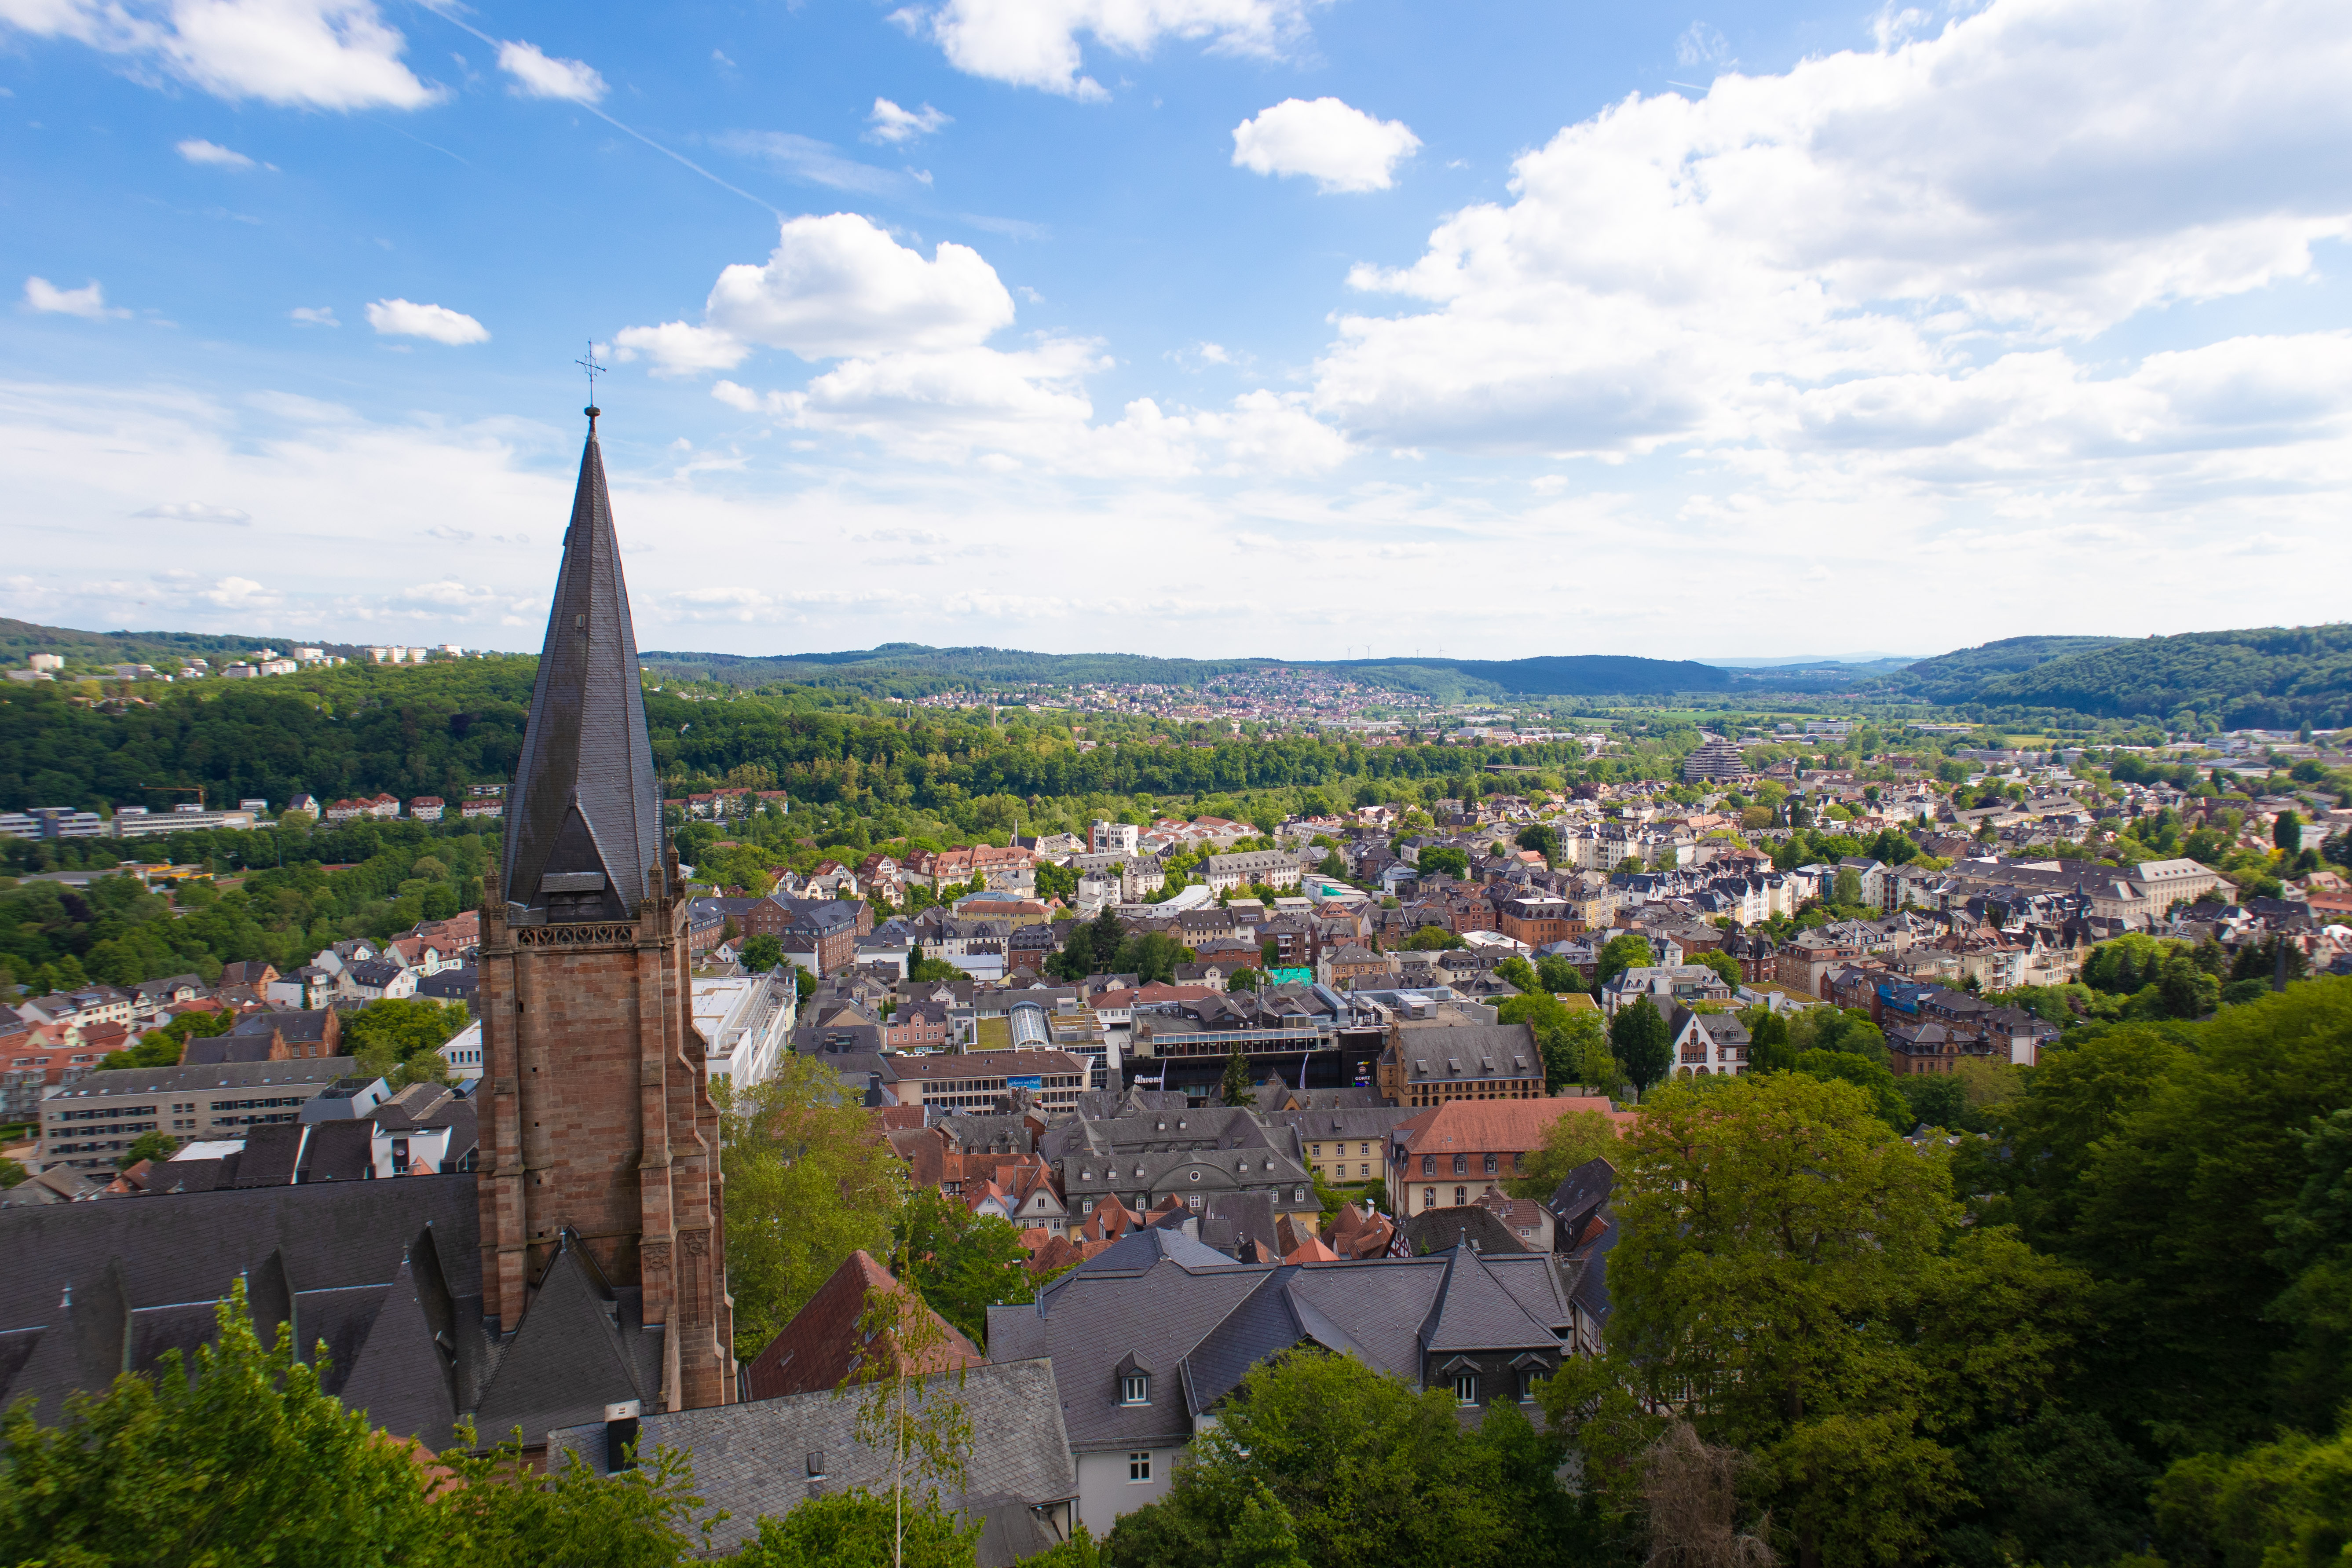 The view of a small german town from atop a hill